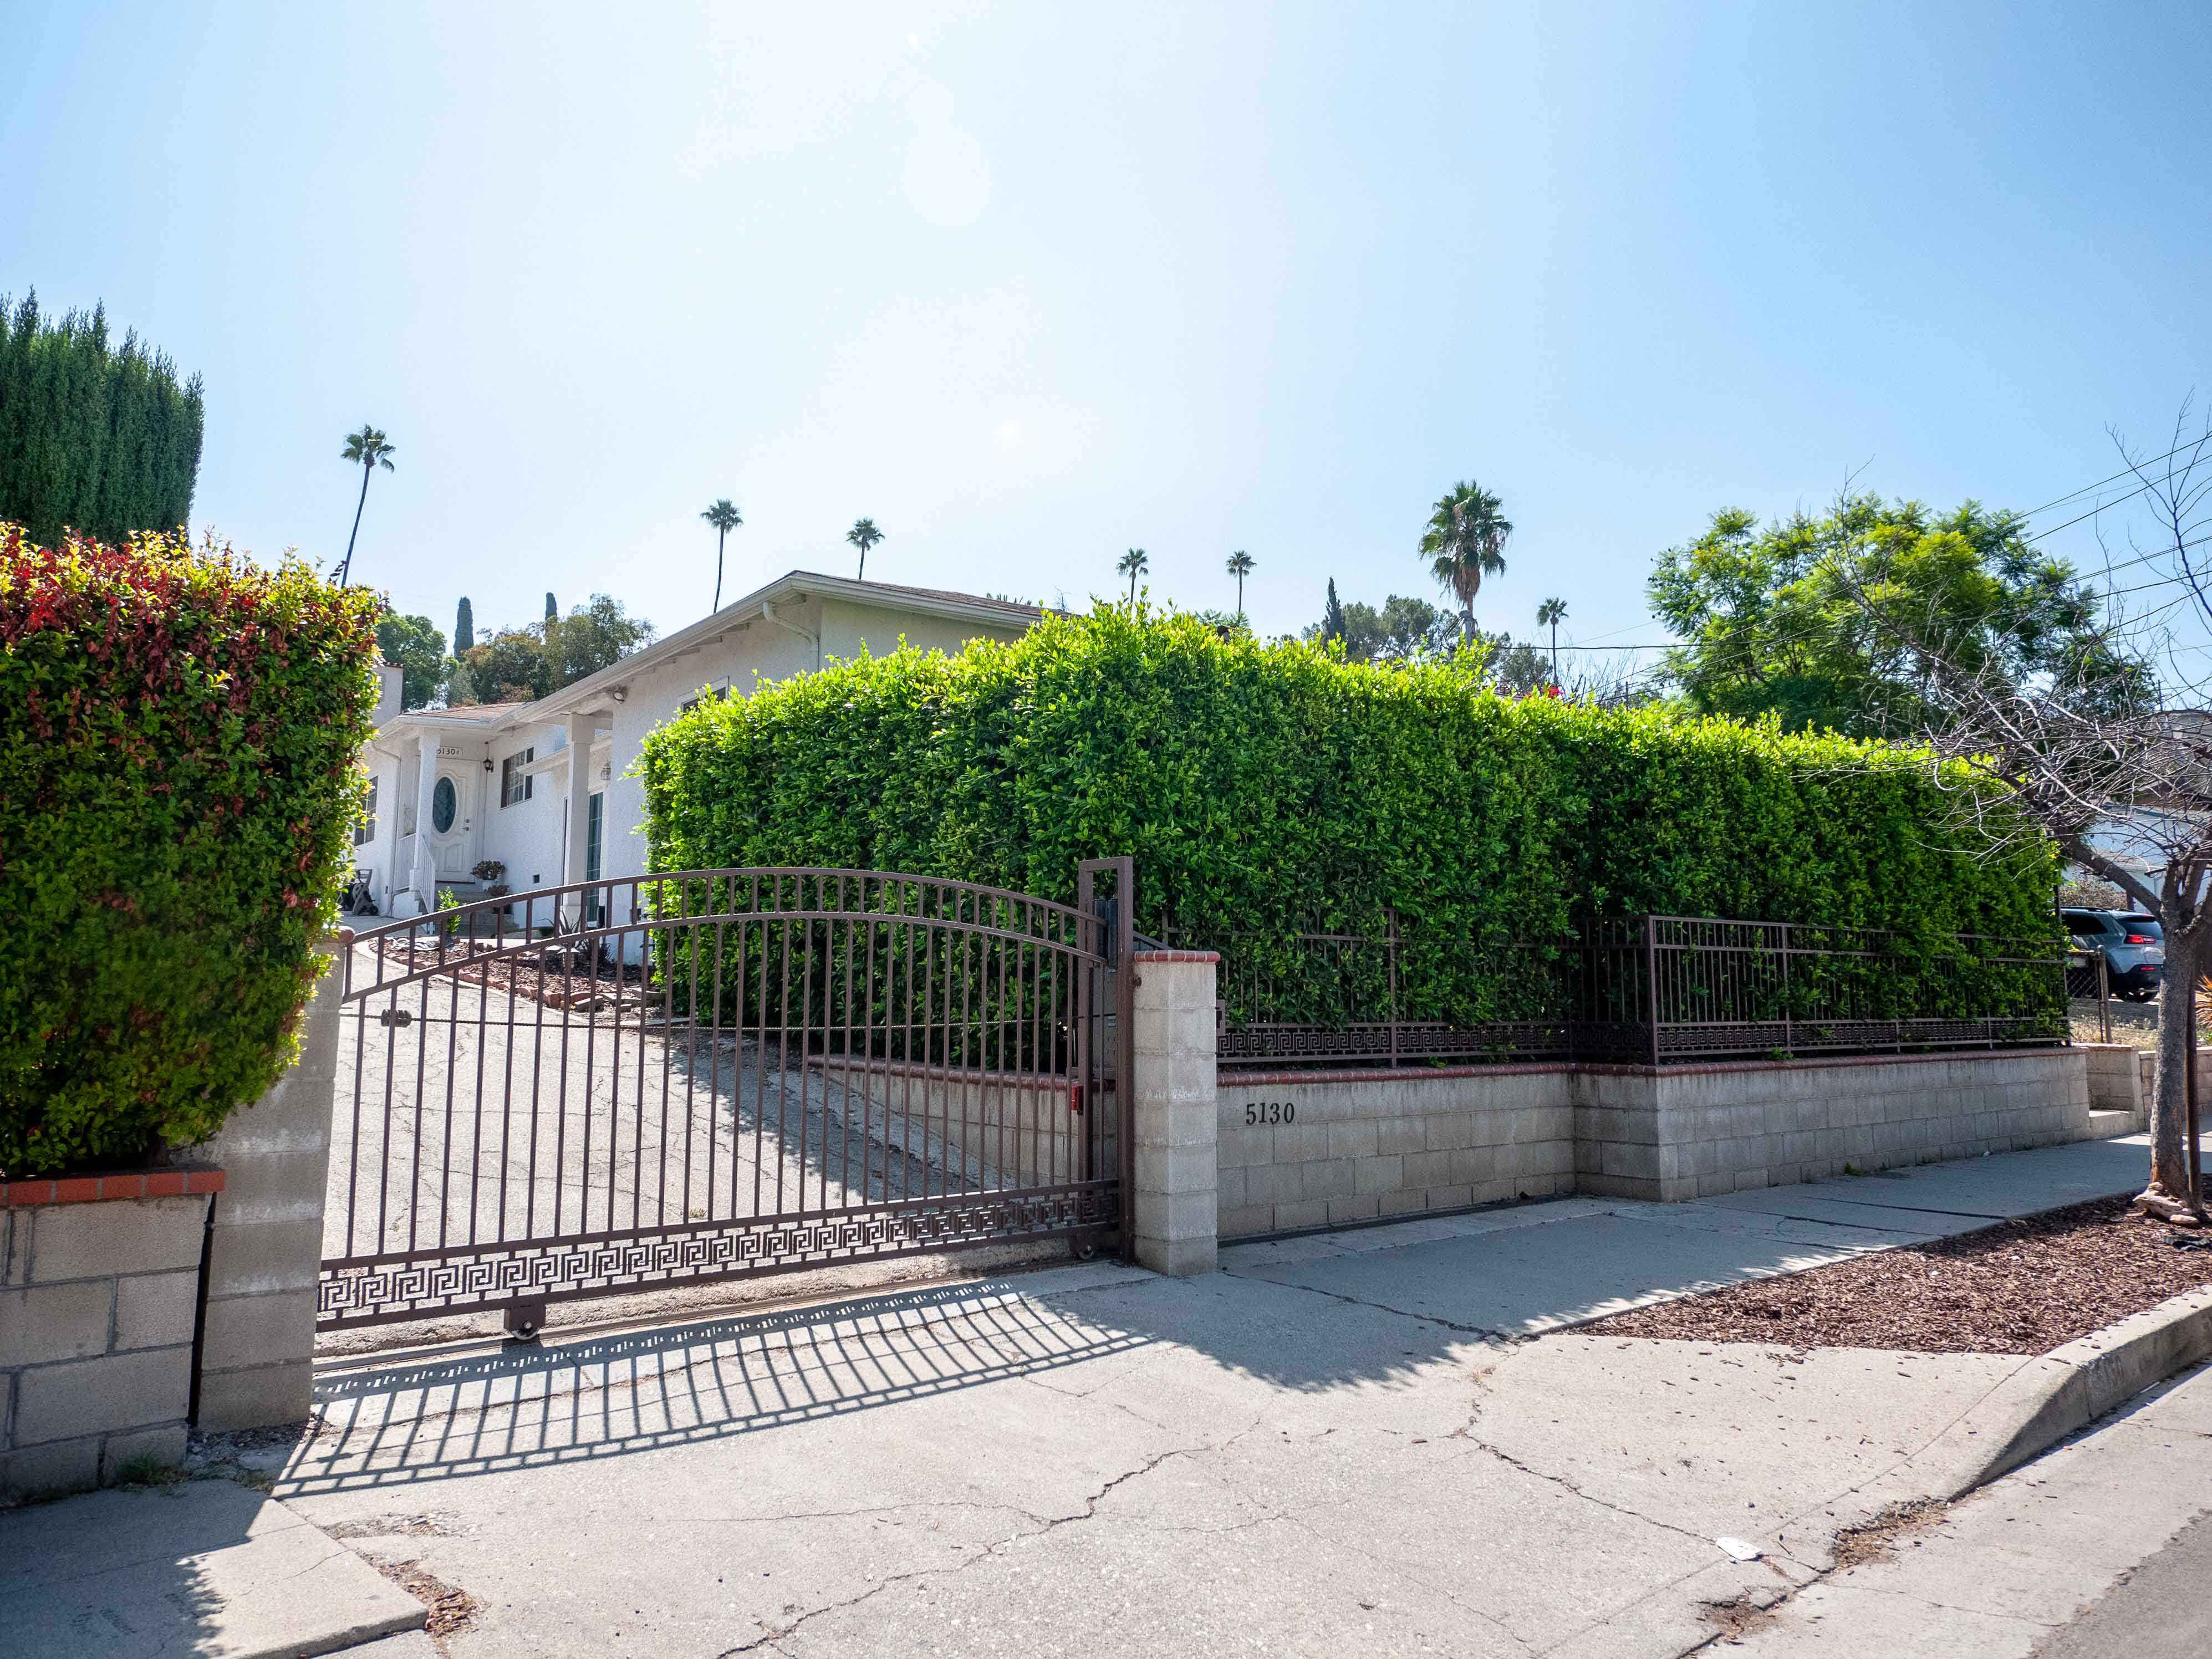 OPEN AND BRIGHT DUPLEX IN EL SERENO  2/2 With BONUS ROOM   PRIVATE FRONT YARD   + CENTRAL AC & PARKING INCLUDED!